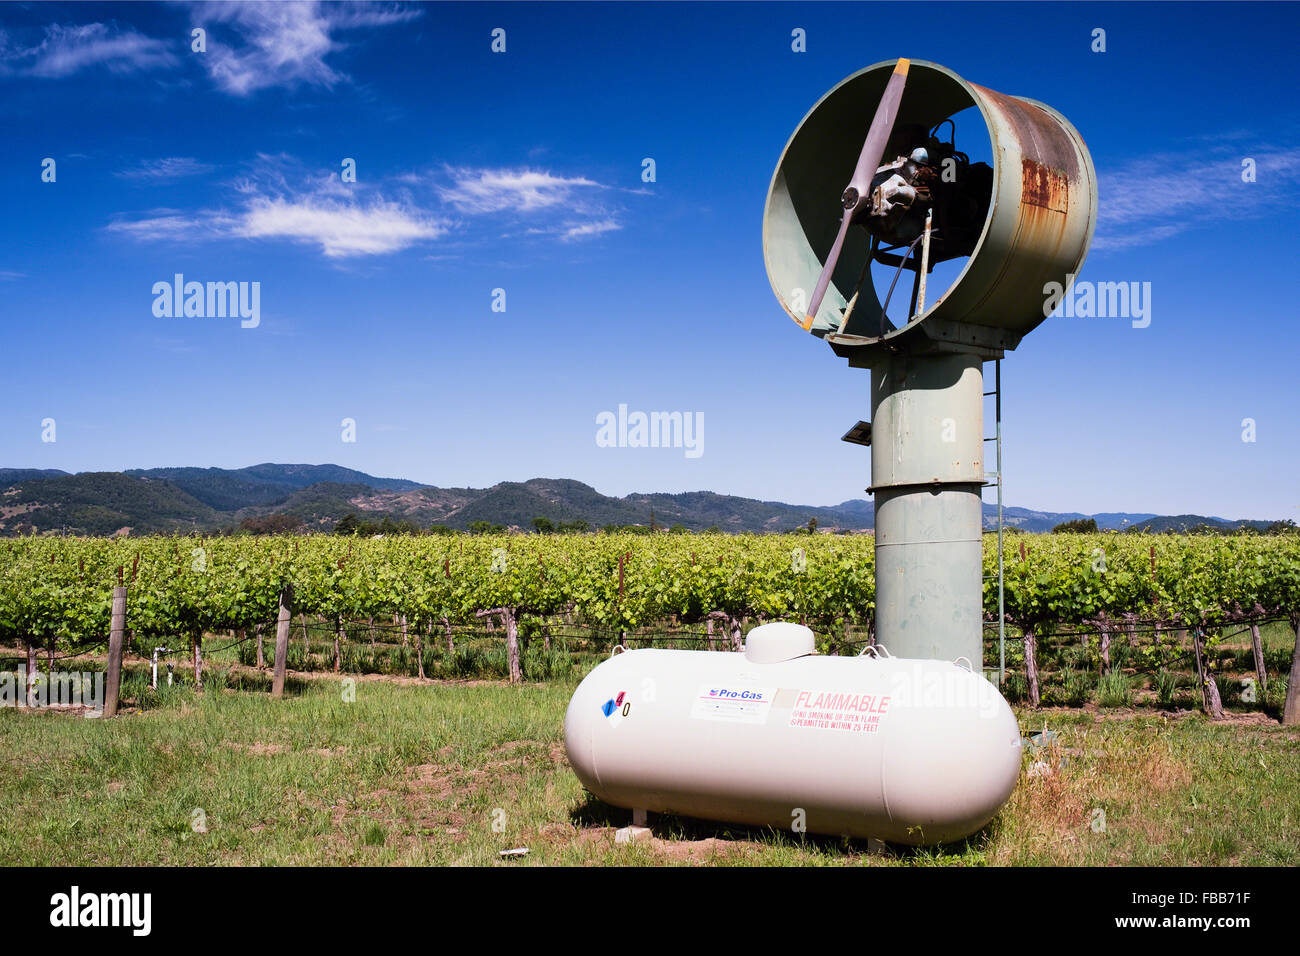 Low Angle View of a Wind Machine in a Vineyard, Calistoga, Napa Valley, California - Stock Image